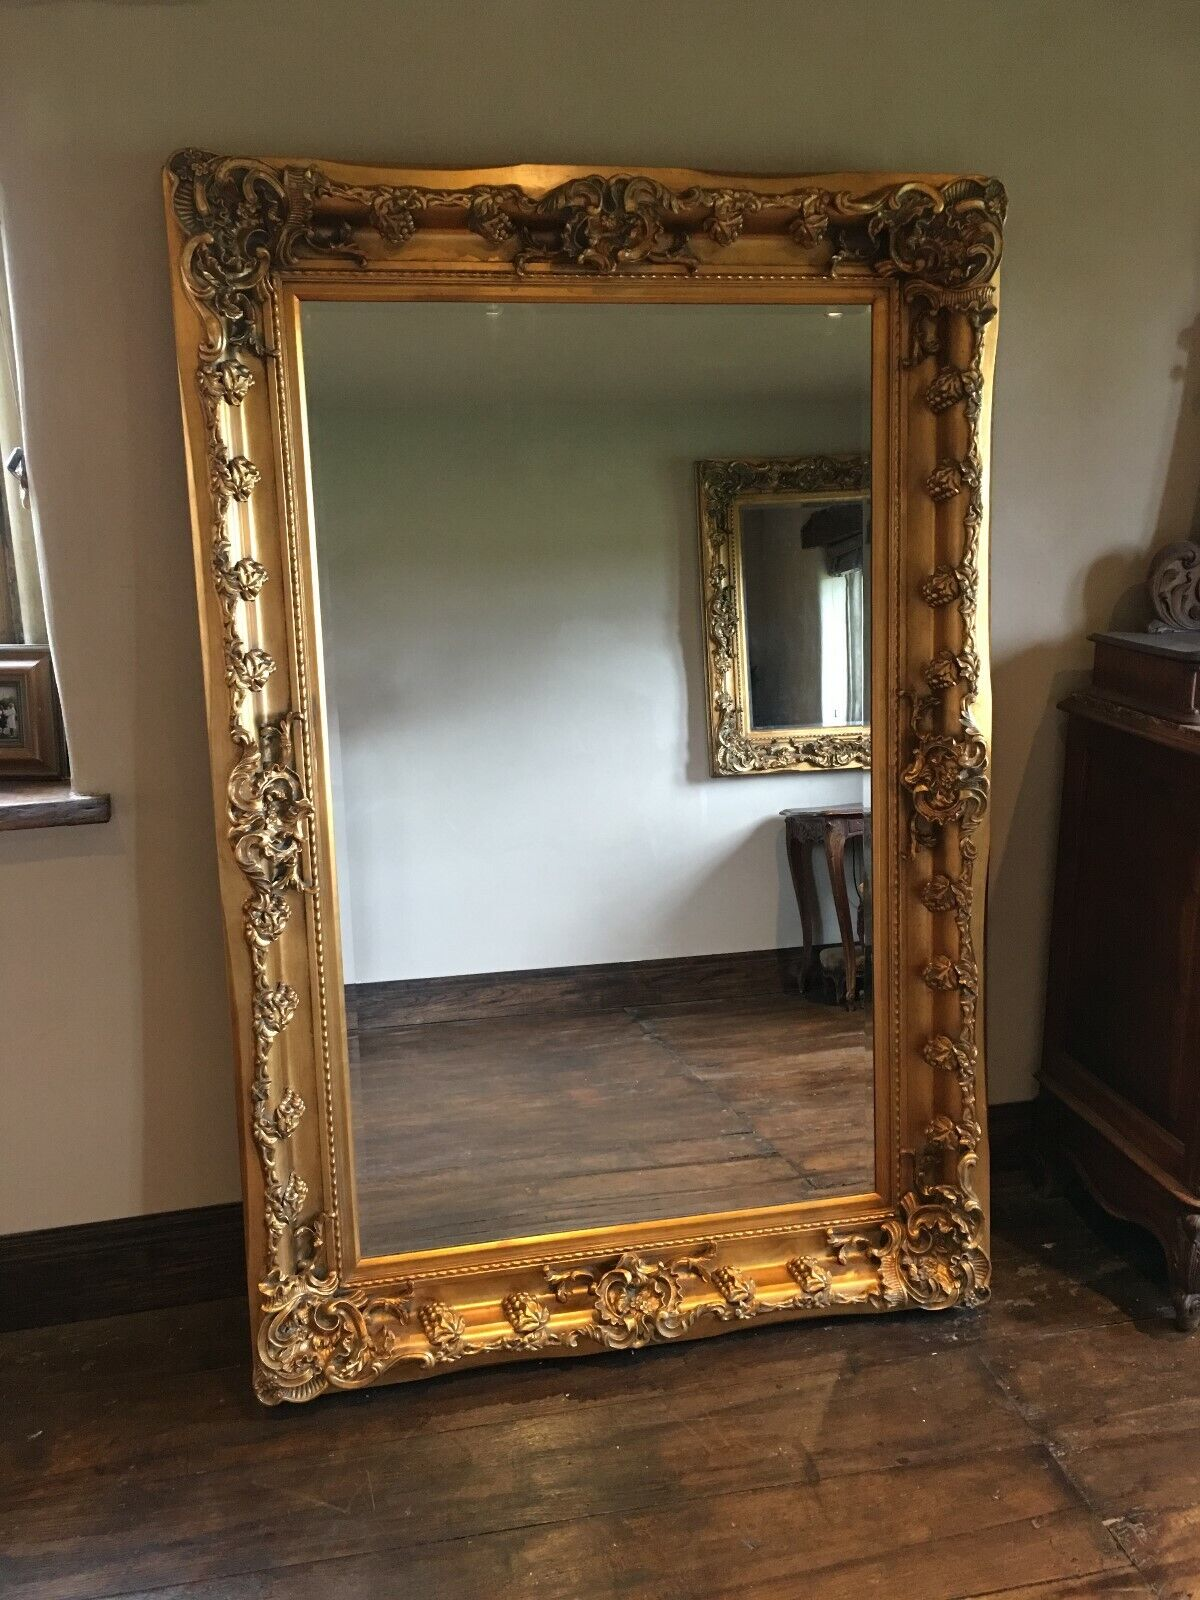 Home Furniture Diy French Oval Gold Antique Style Wall Mirror Antique Ornate Hotelsetteemezzo It